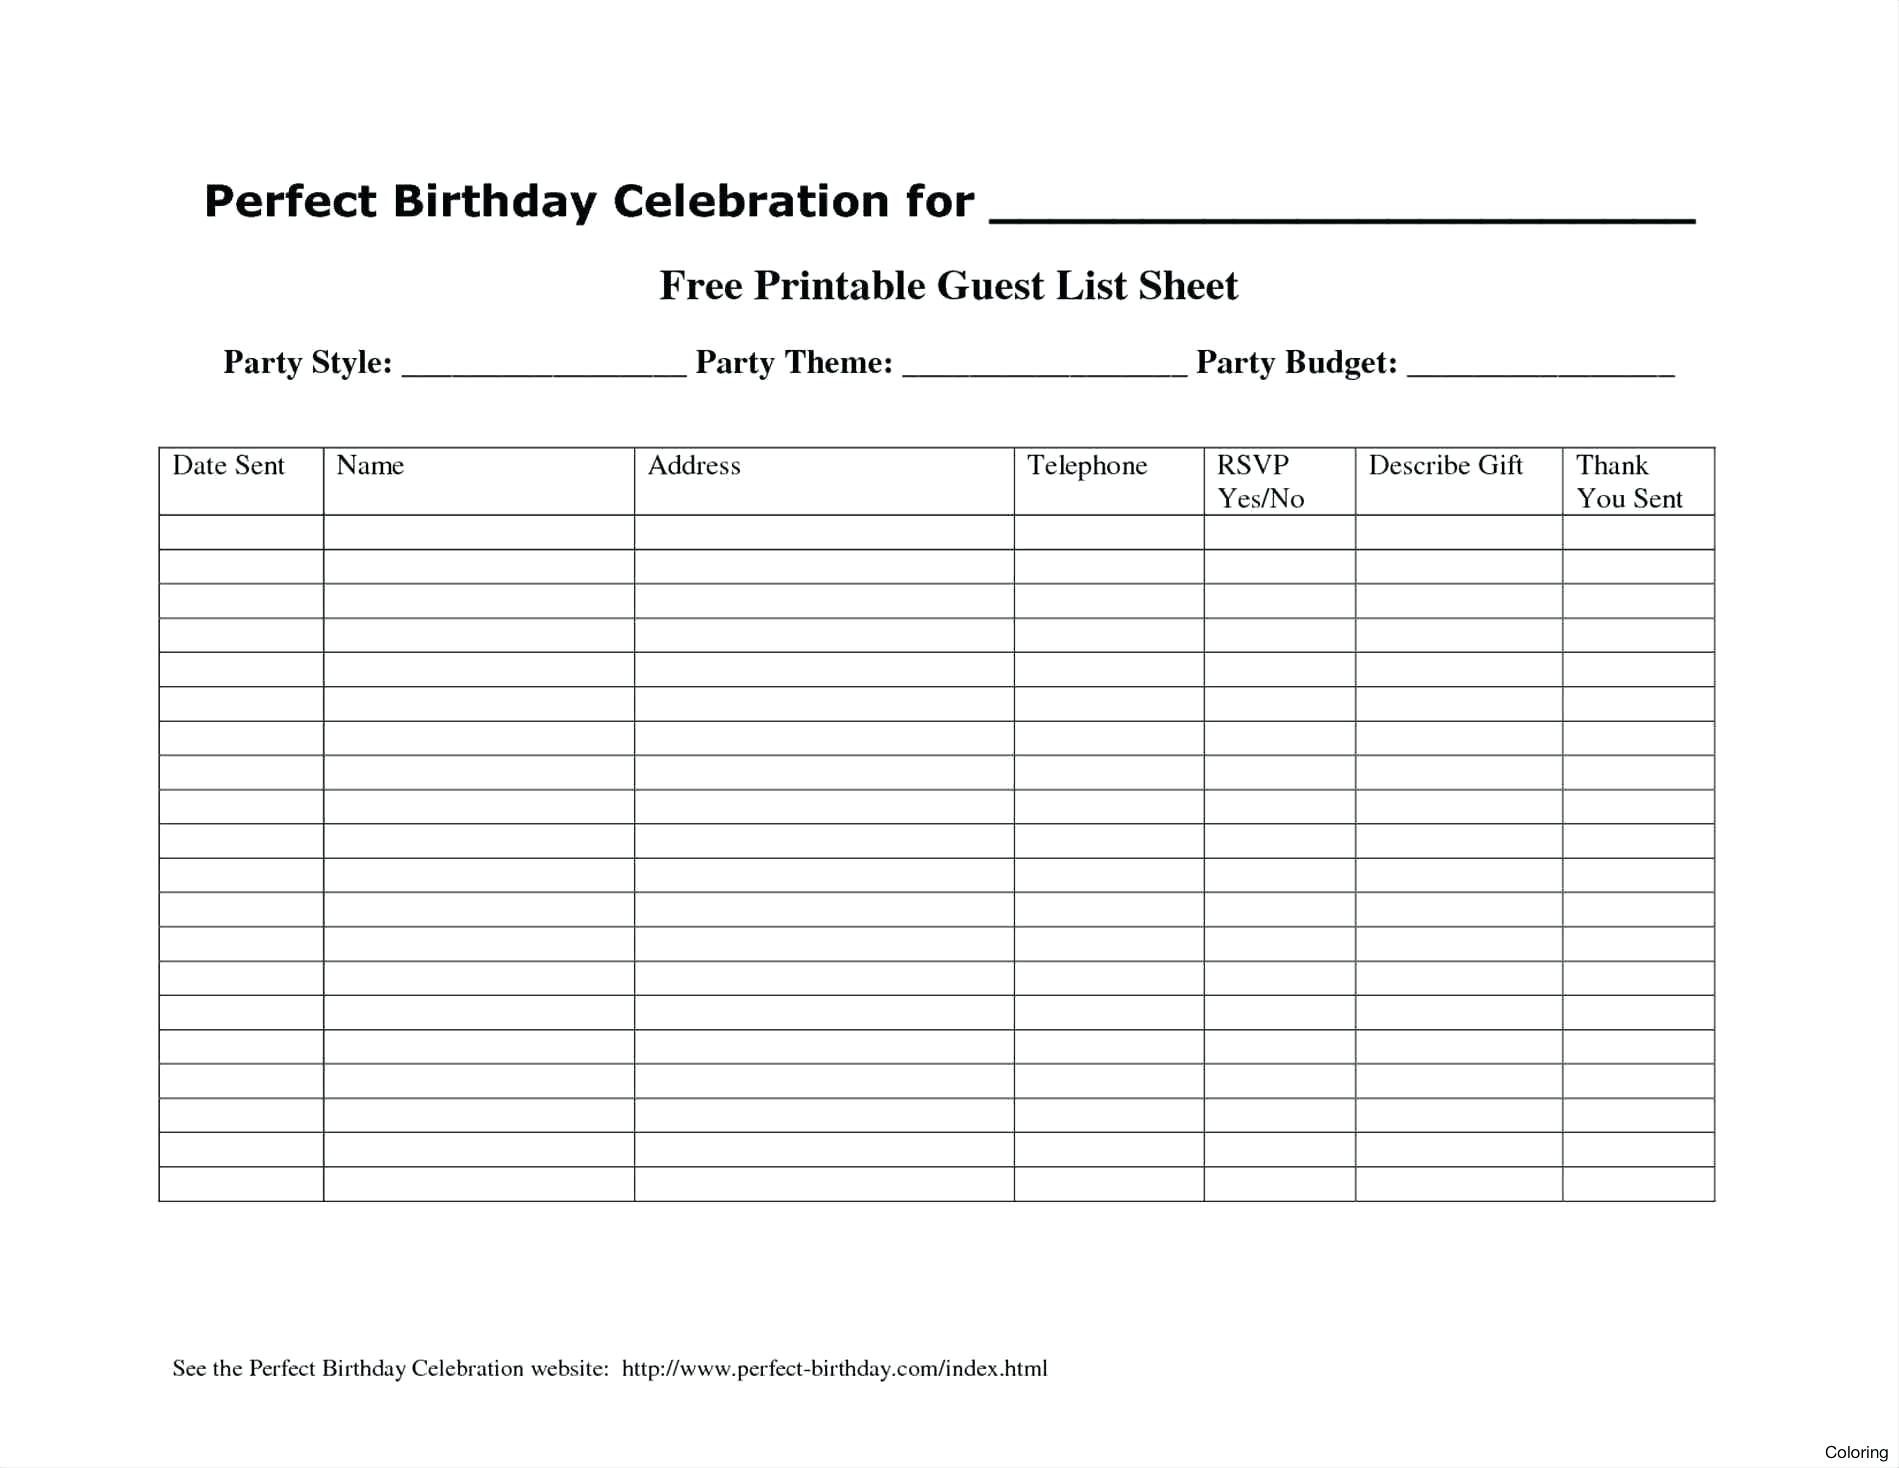 020 Template Ideas Free Wedding Guest List Guestlist Download Excel - Free Printable Birthday Guest List